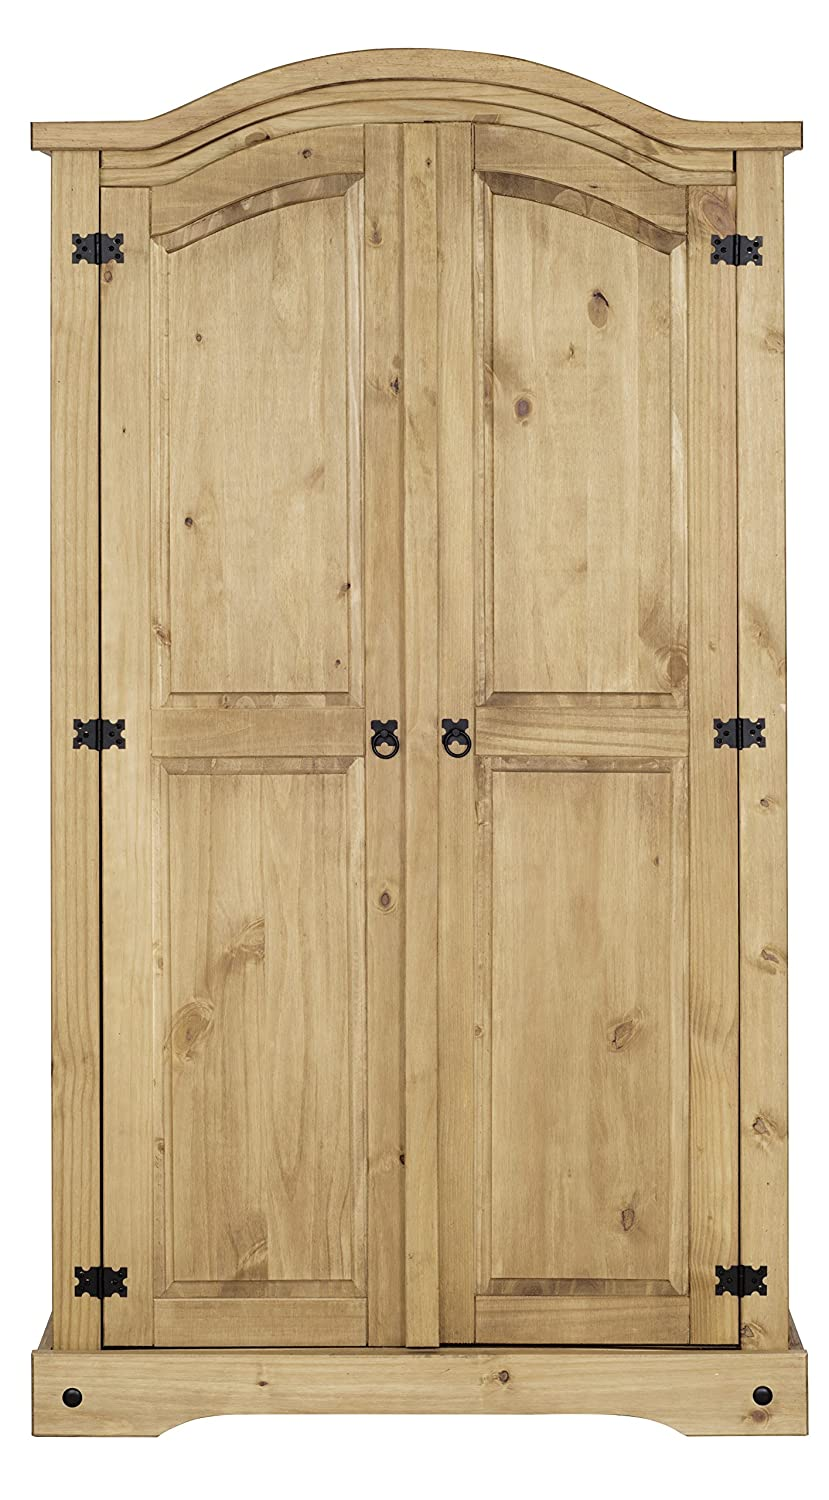 Corona 2 Door Wardrobe, Solid Wood, Distressed Waxed Pine 100-101-022